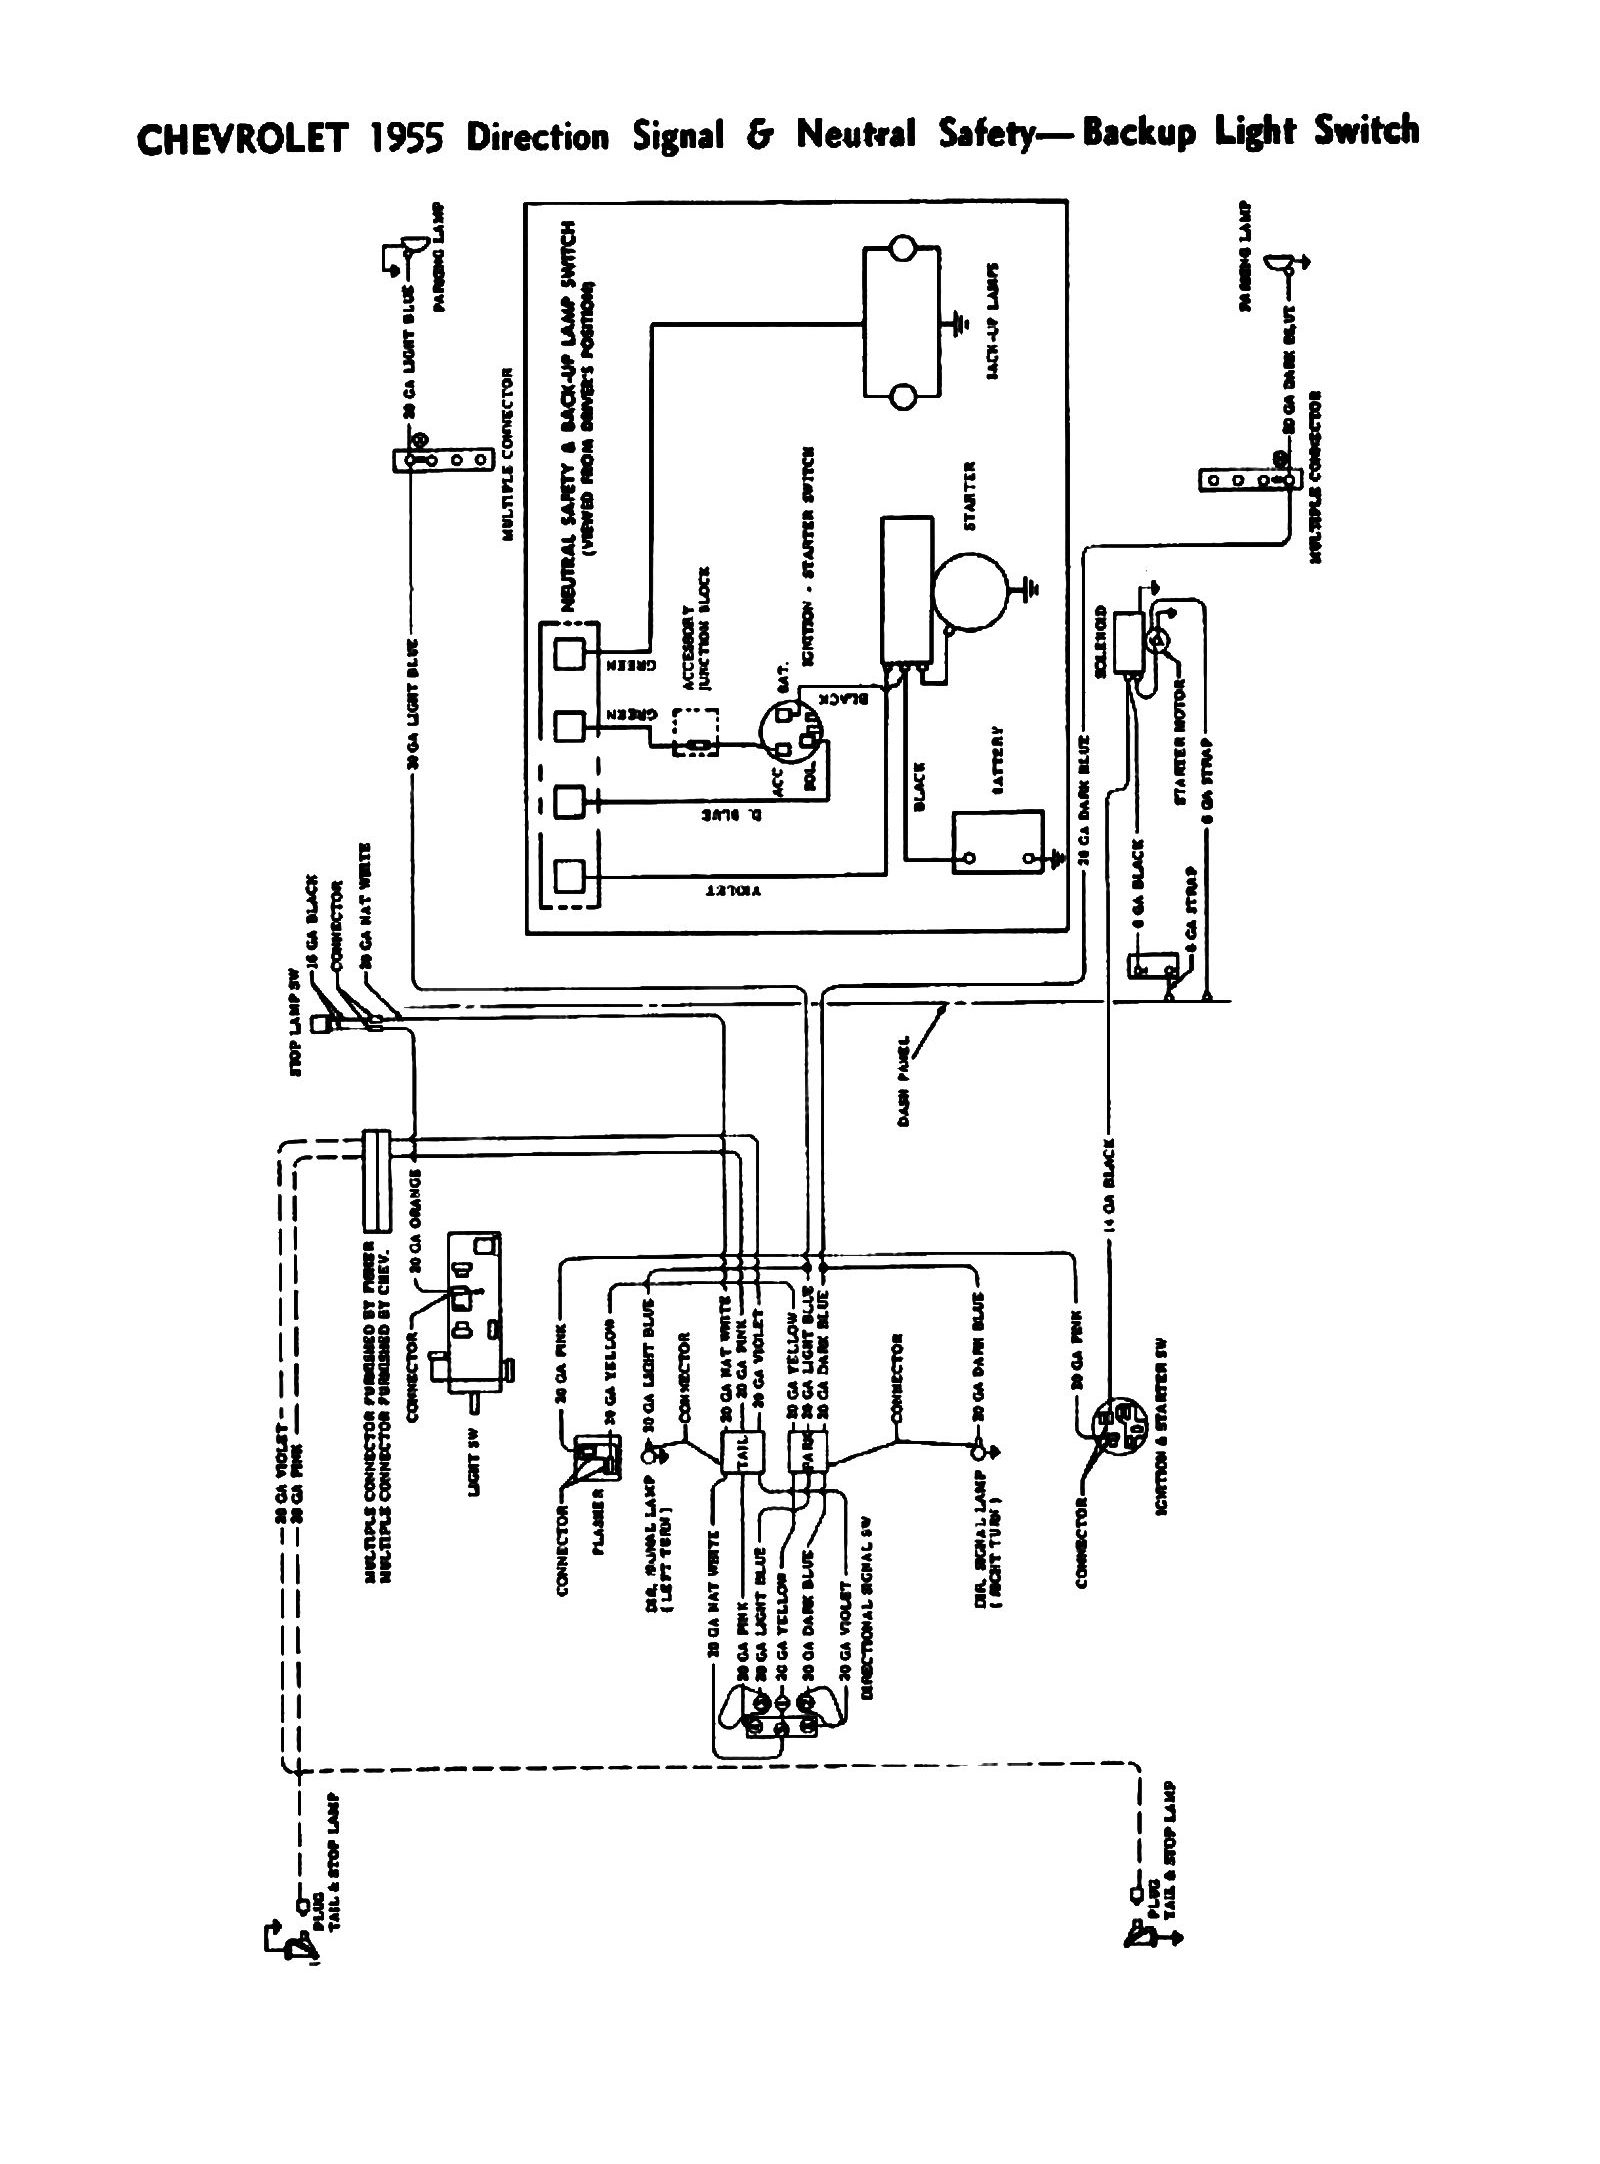 hight resolution of 1957 chevy wiring harness for ignition wiring diagram1957 chevrolet steering column wiring diagram 8